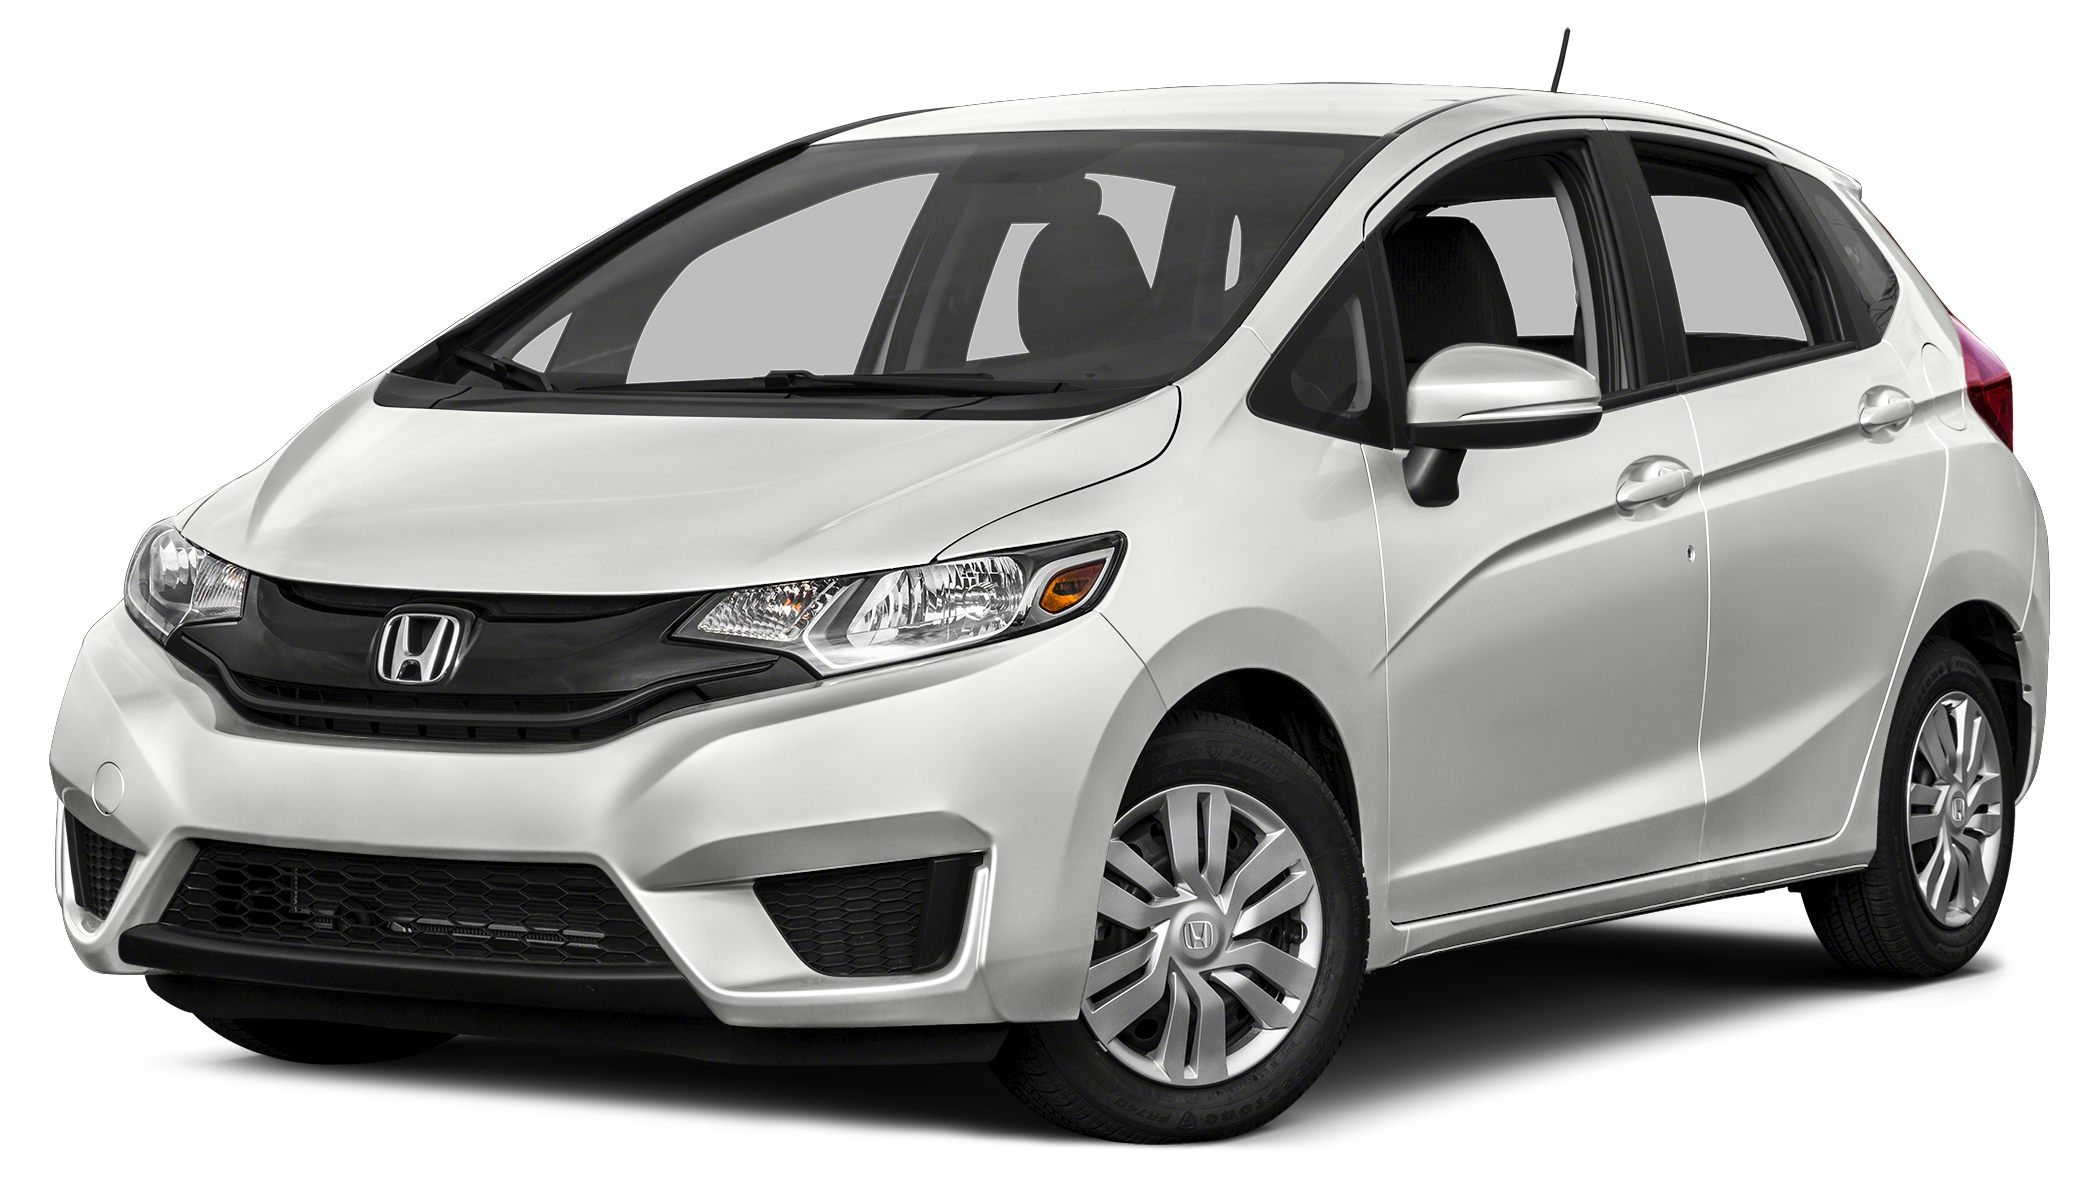 2015 Honda Fit LX This 2015 Honda Fit 4dr 5dr Hatchback Manual LX features a 15L 4 CYLINDER 4cyl